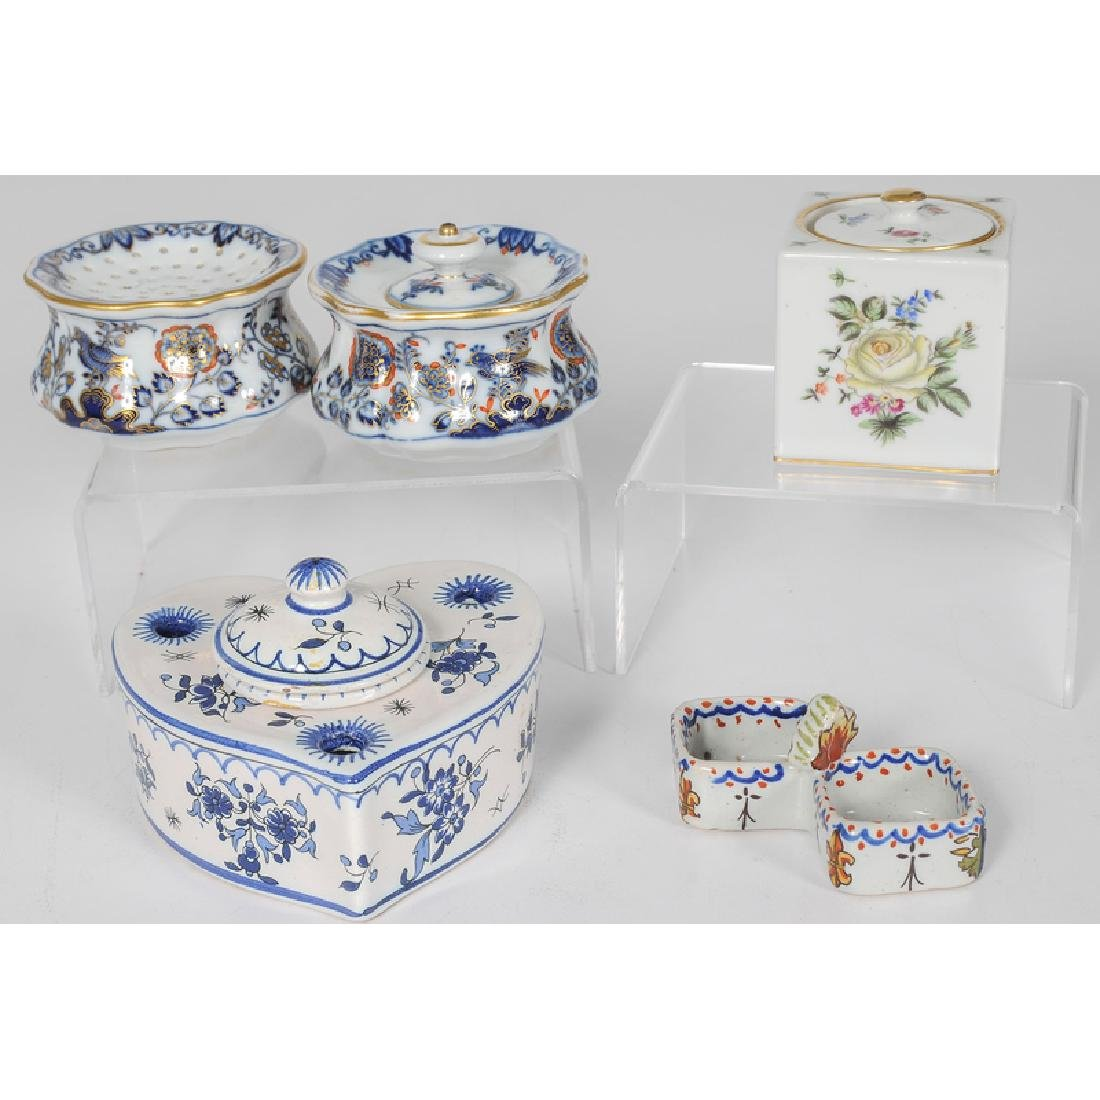 Meissen, Herend and French Faience Inkwells, Plus